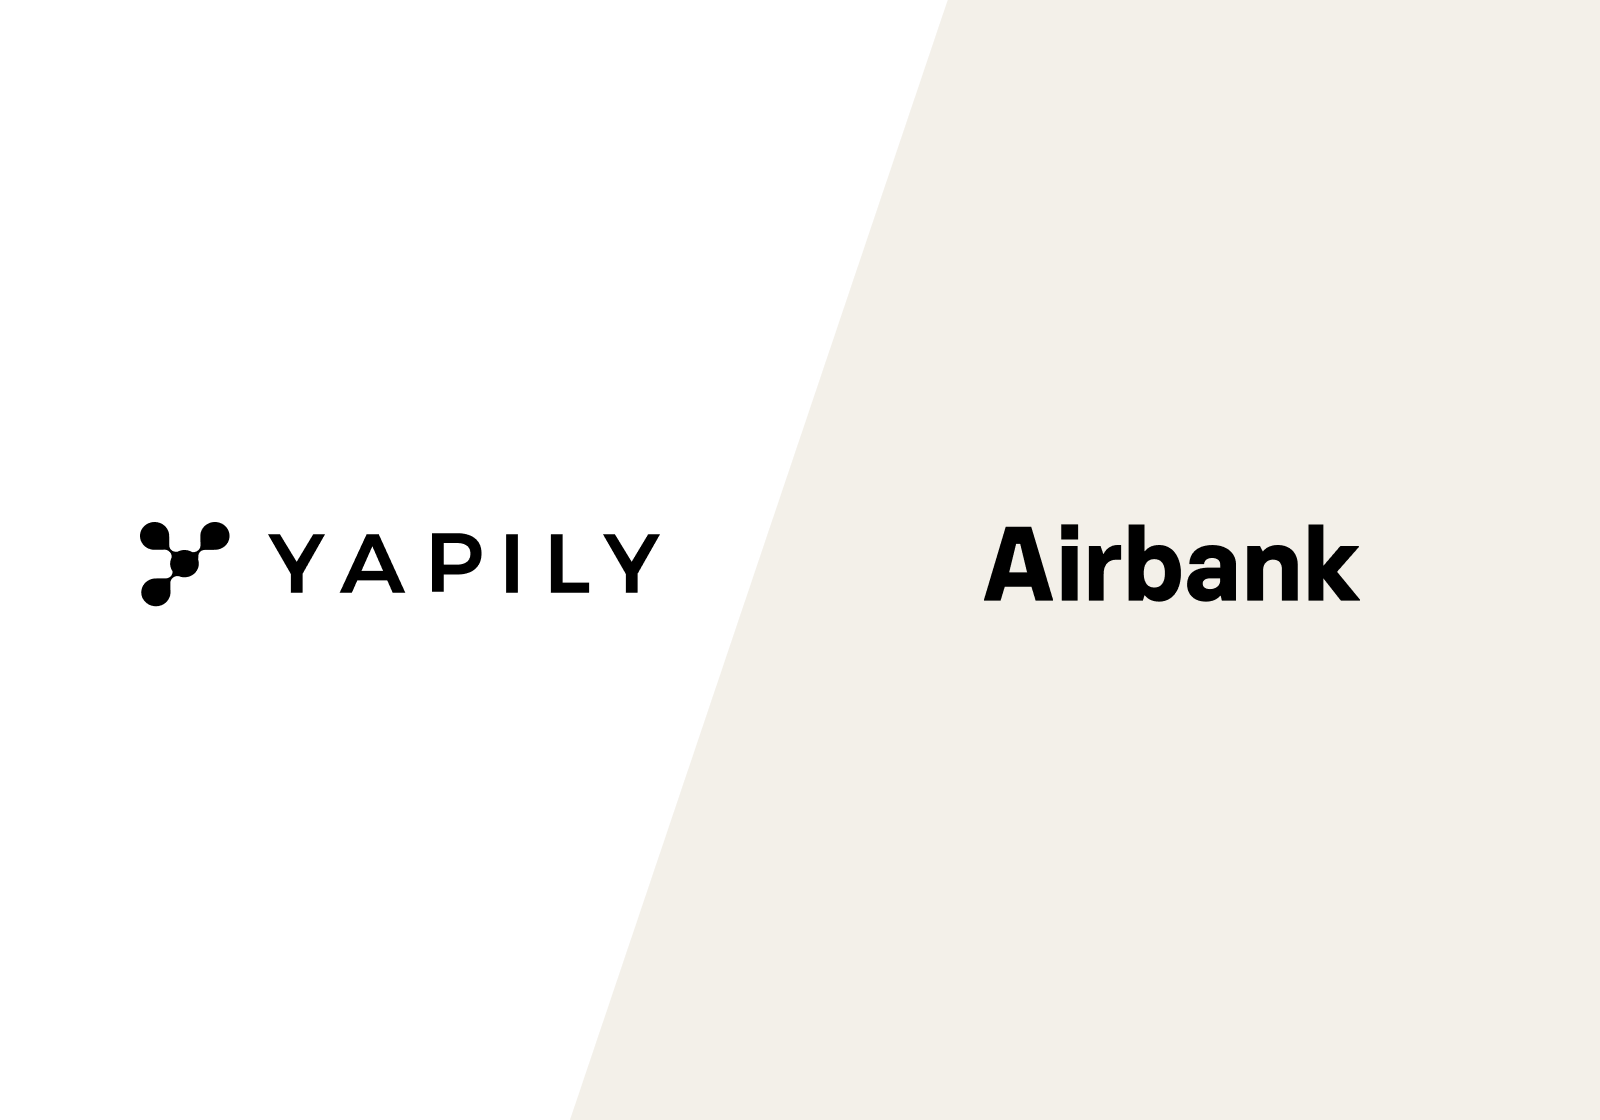 Airbank Selects Yapily to Build a Financial Management Solution for SMBs